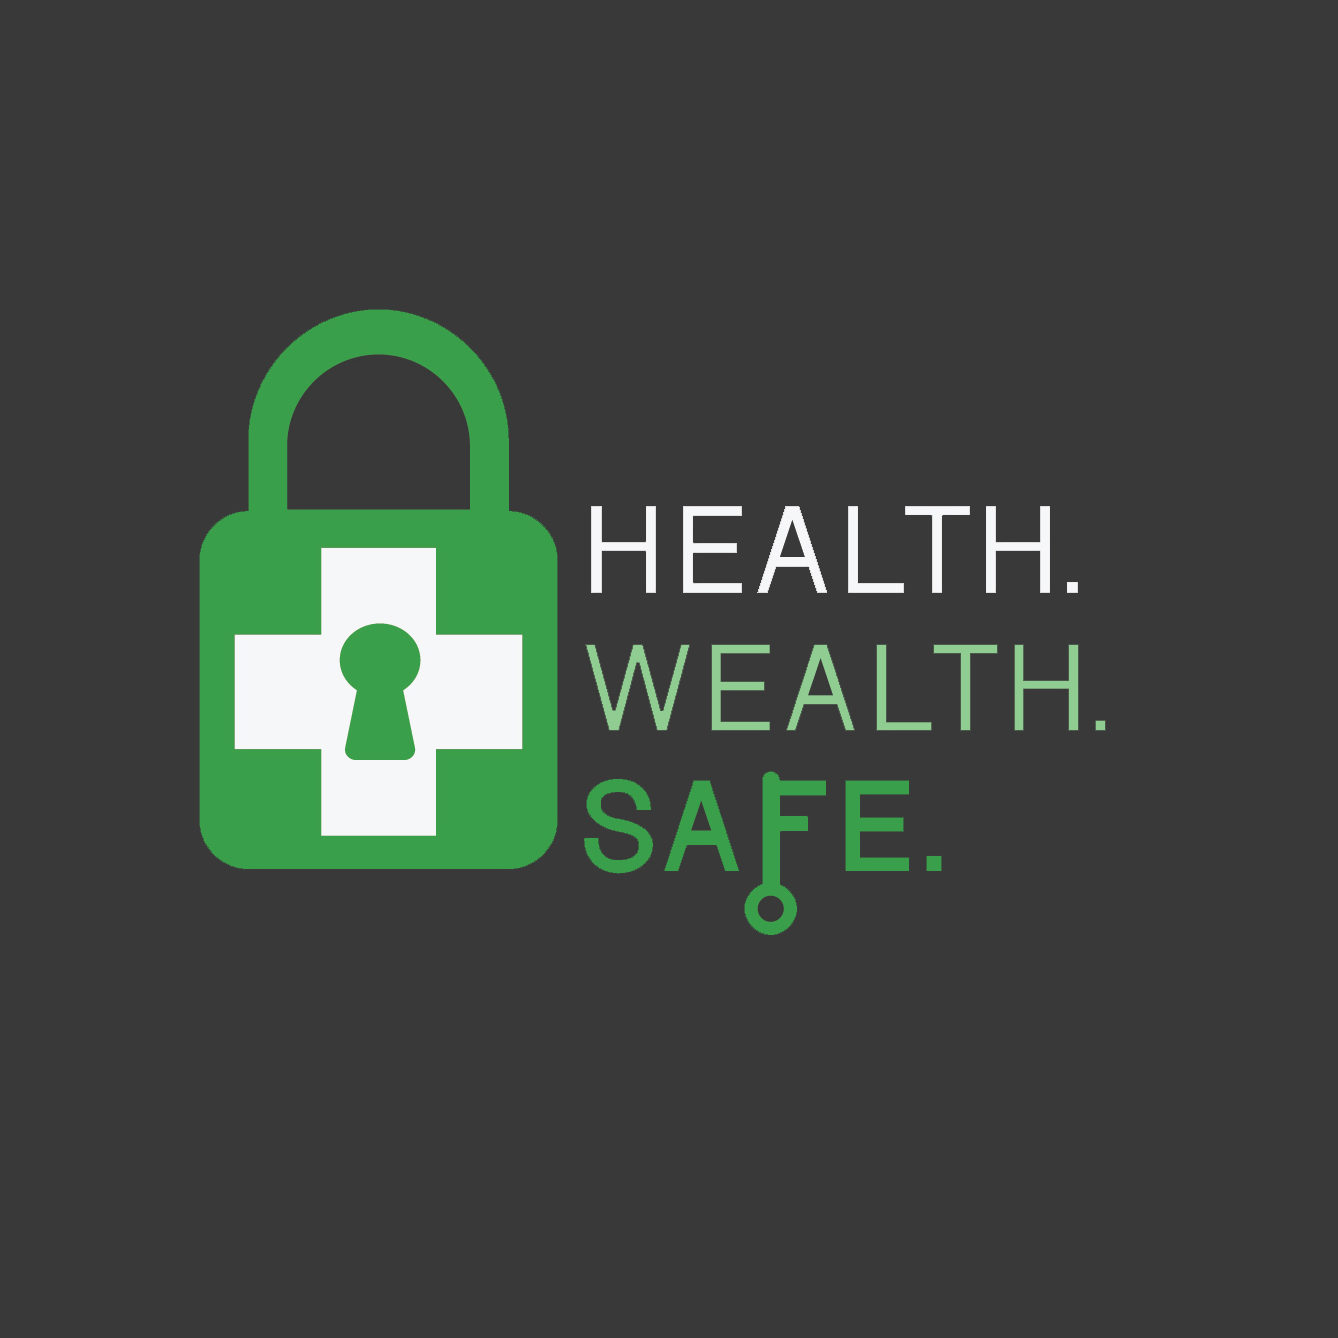 Health Wealth Safe 06